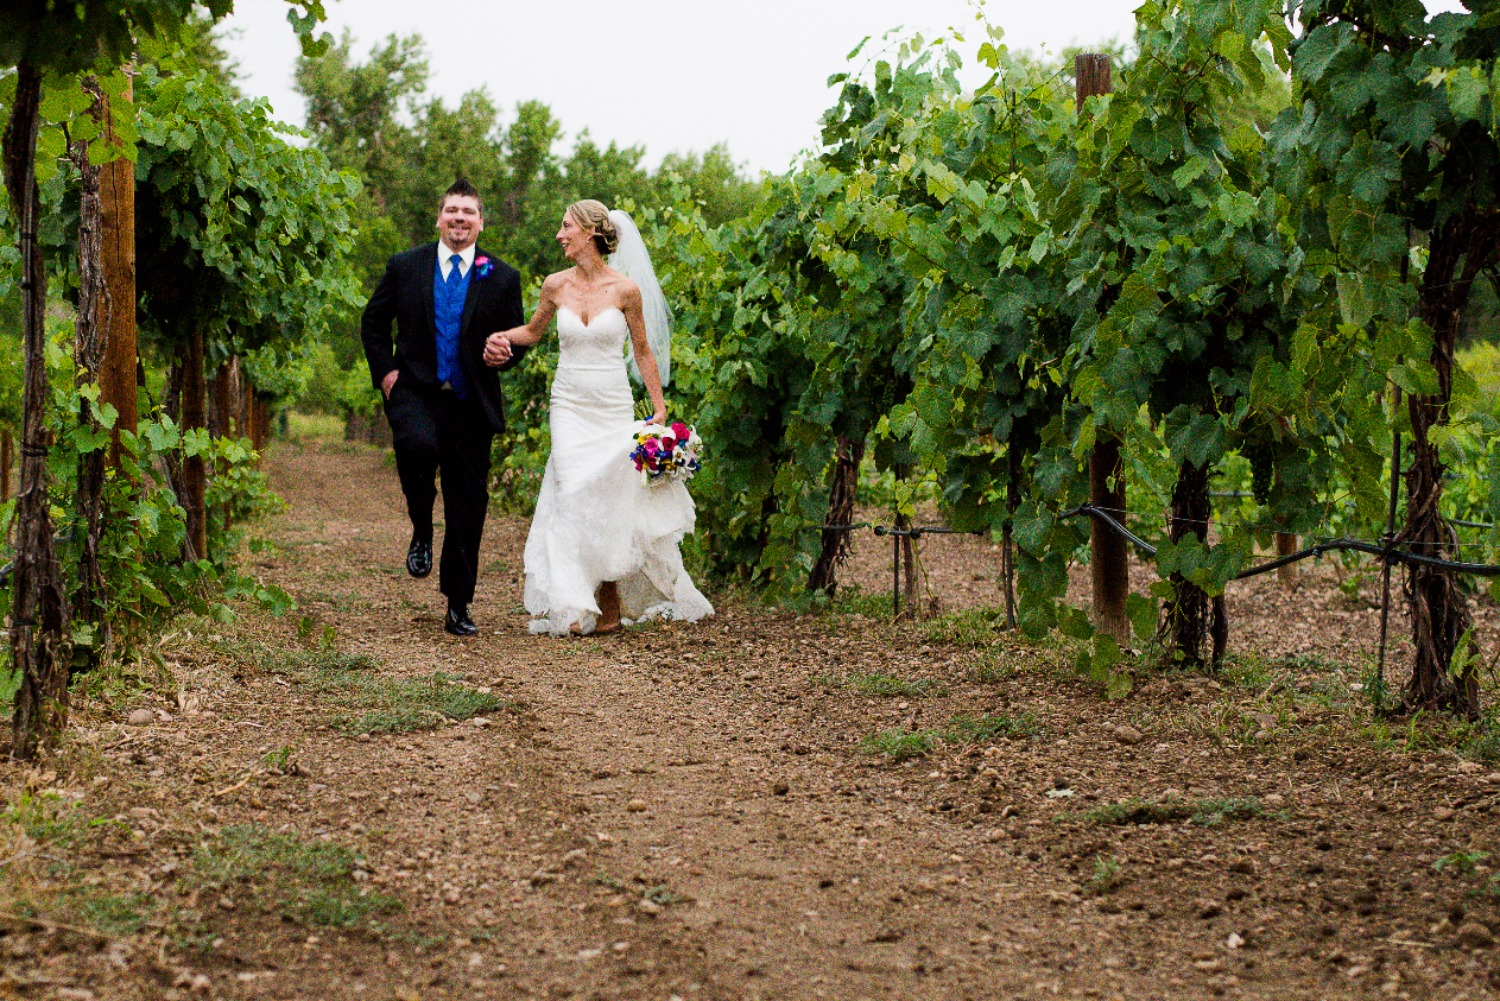 Bride and groom running in vineyard